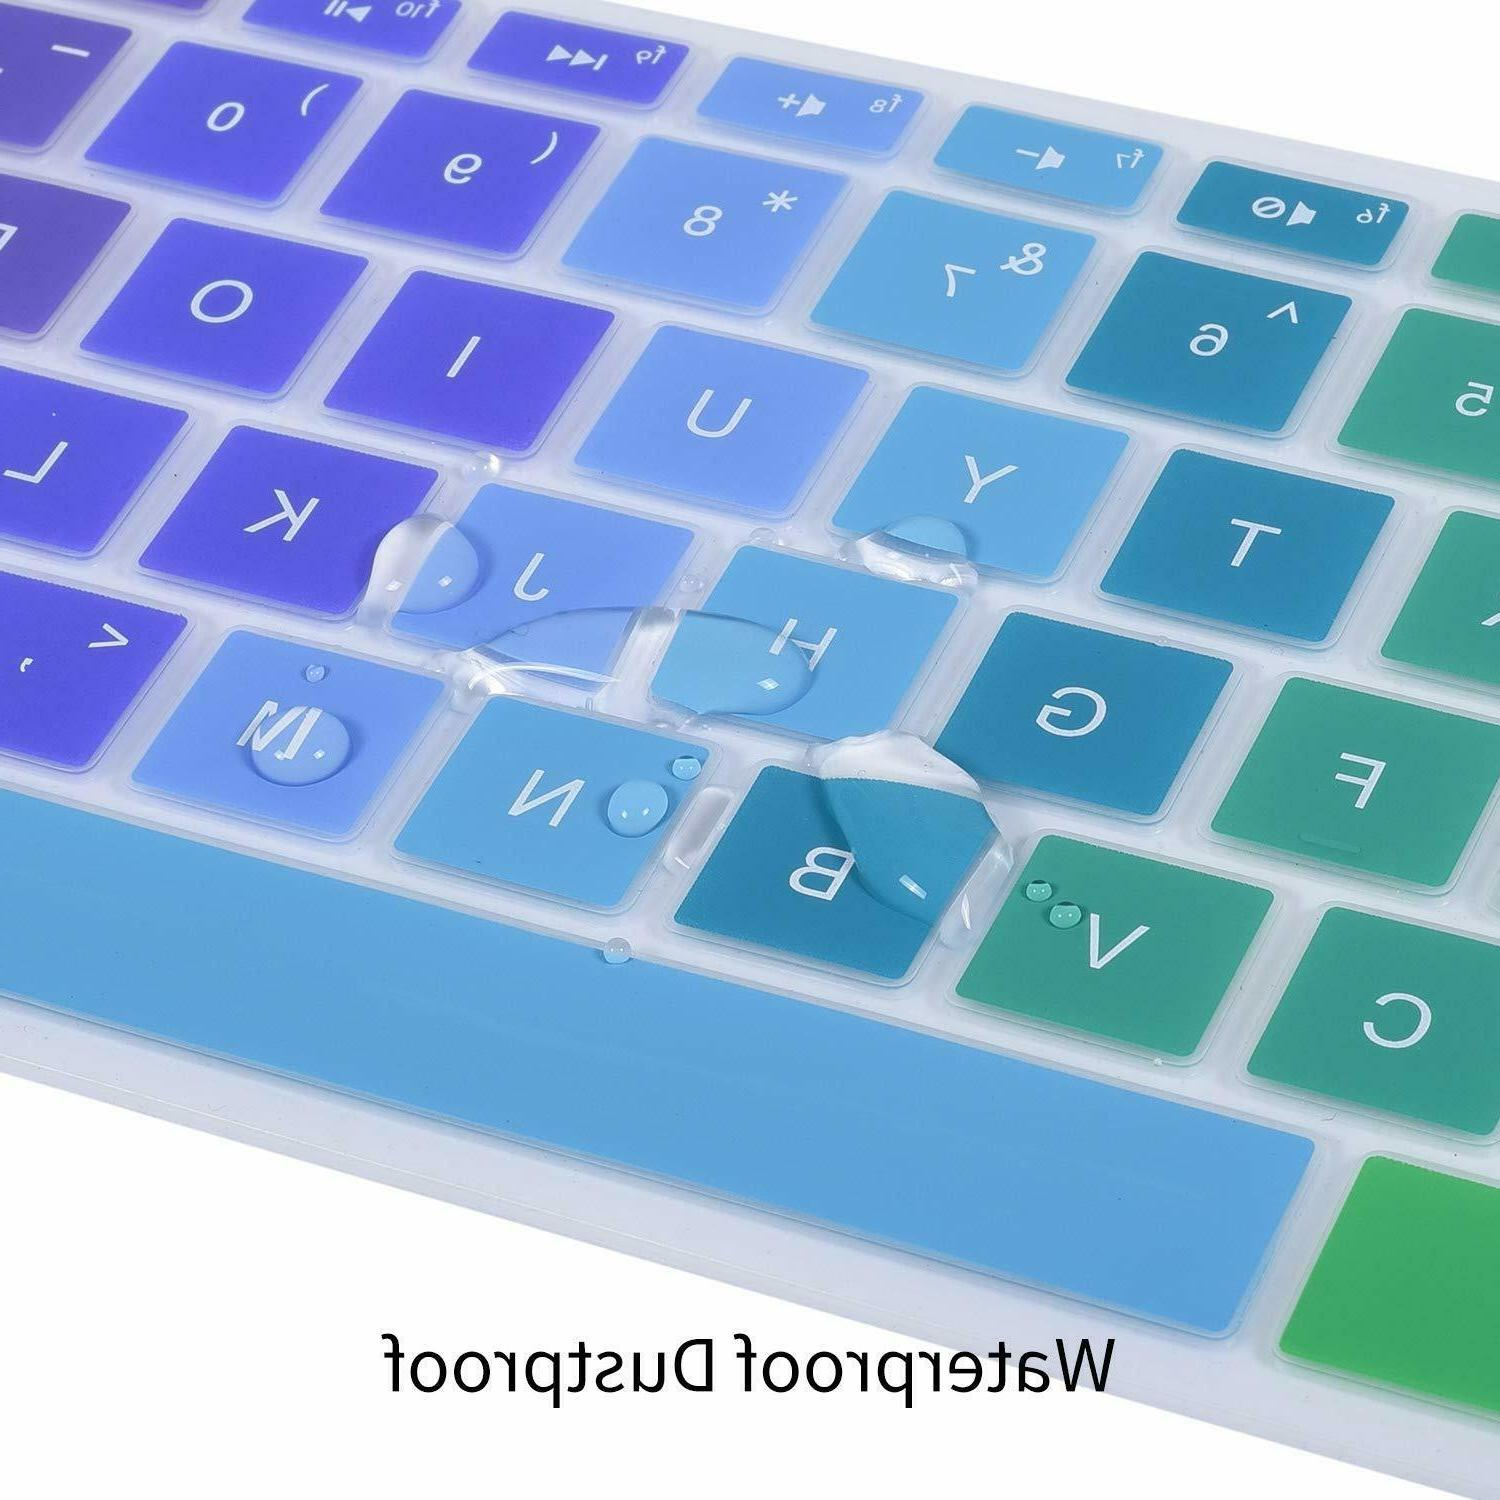 Rainbow Keyboard Case Silicone for Laptop